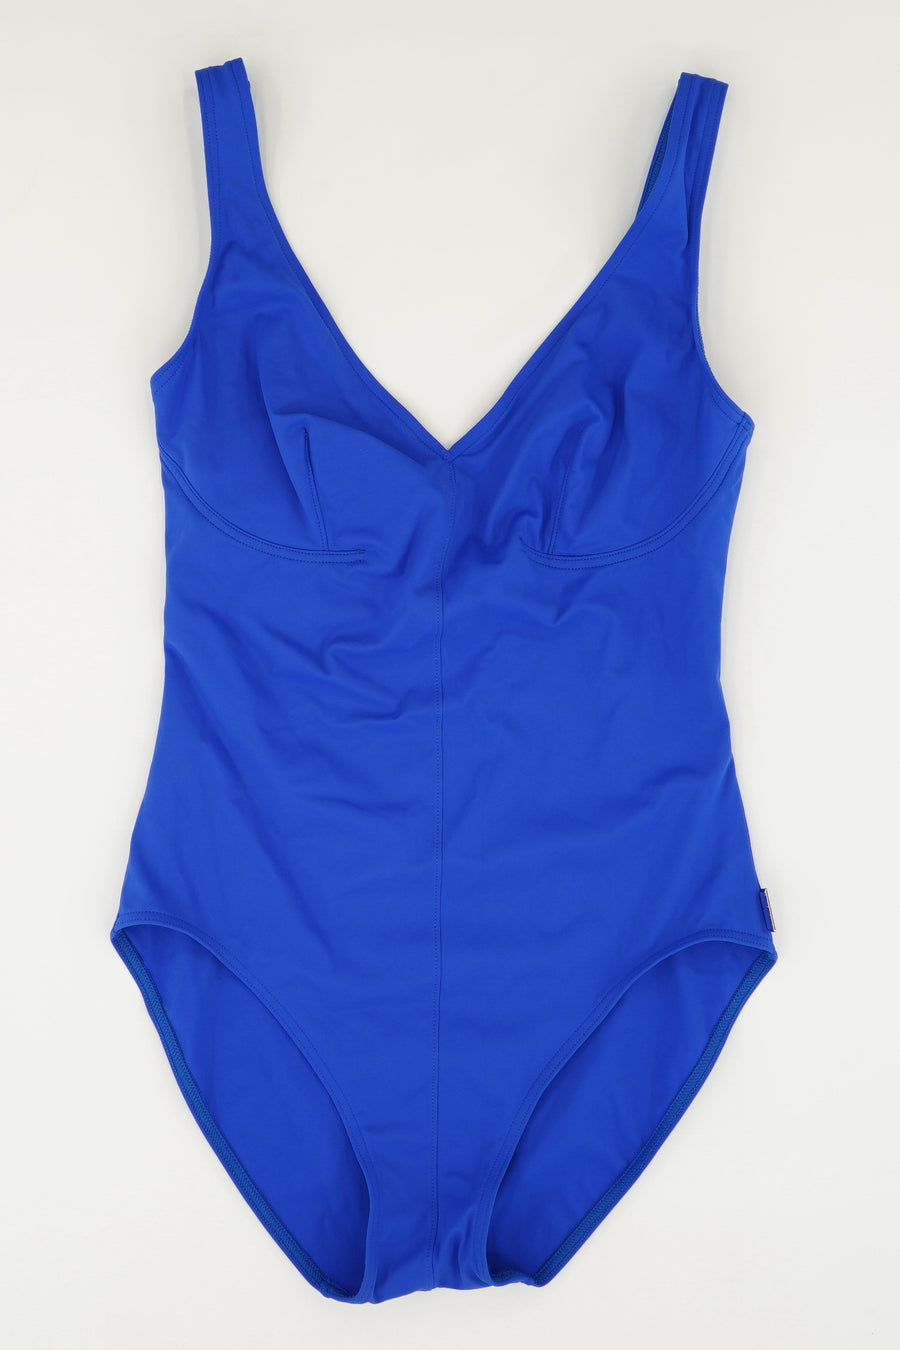 Lagoon One Piece Size 12